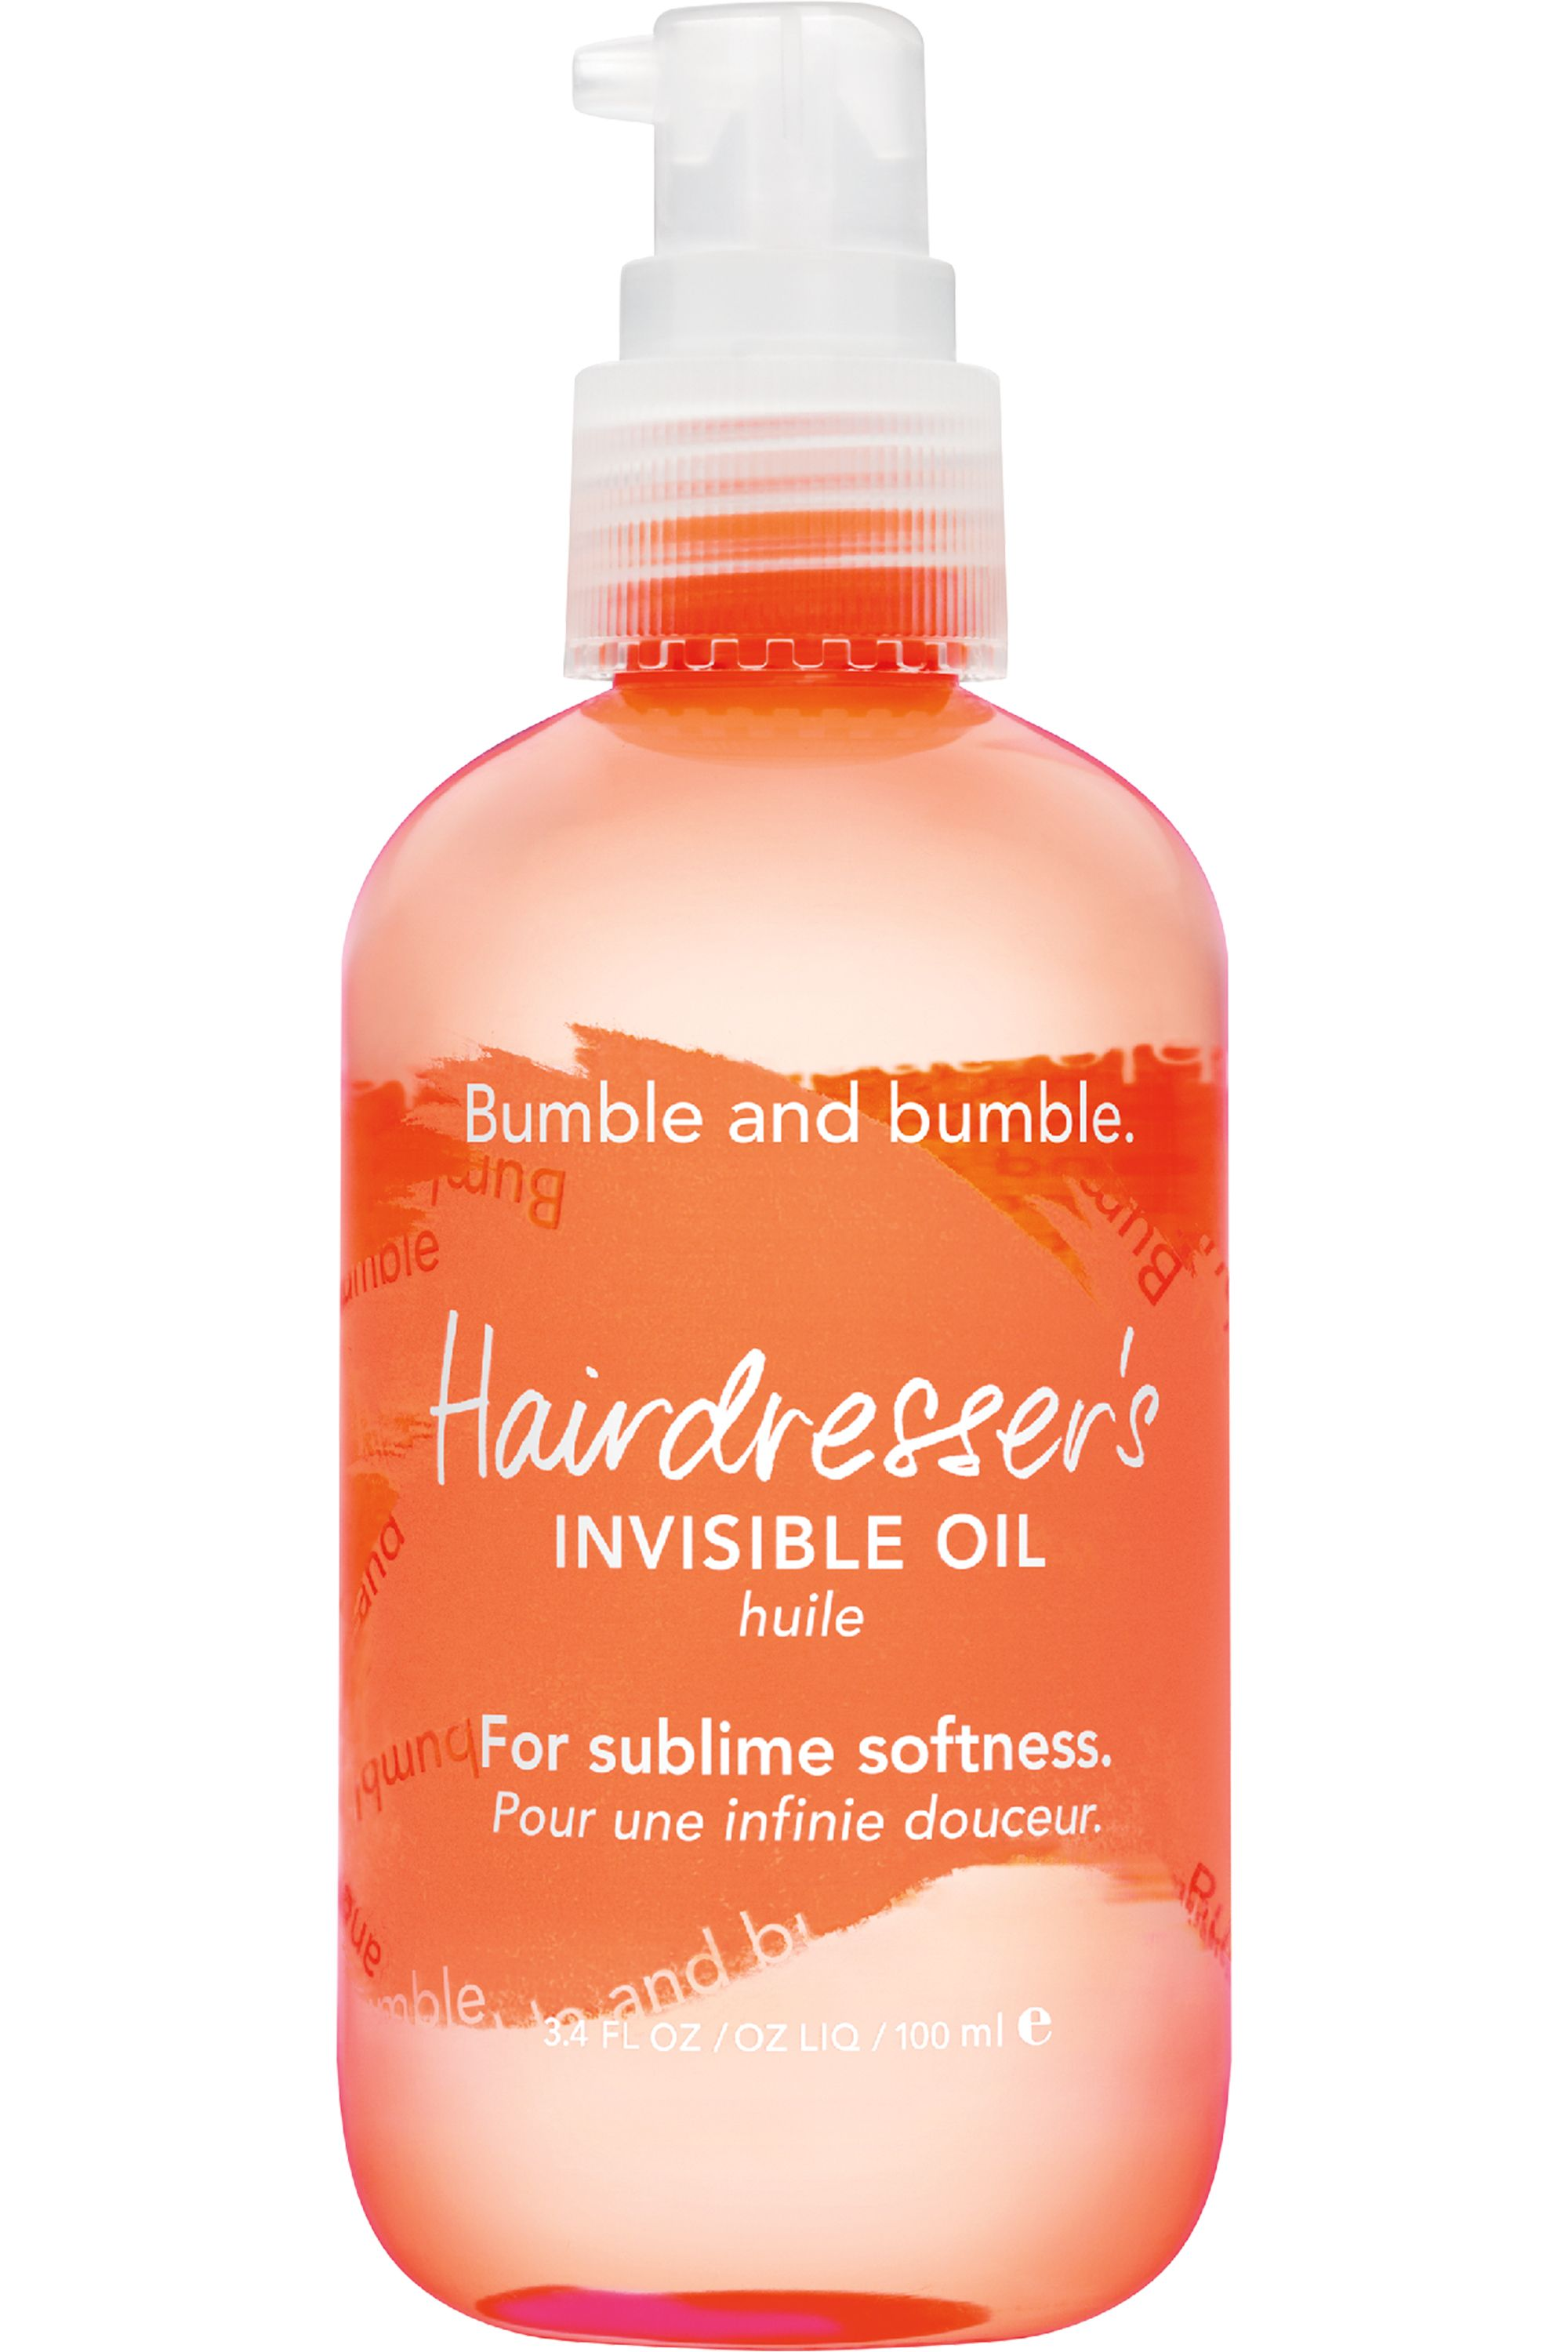 Blissim : Bumble and bumble. - Huile sublimatrice cheveux Hairdresser's Invisible Oil - Huile sublimatrice cheveux Hairdresser's Invisible Oil